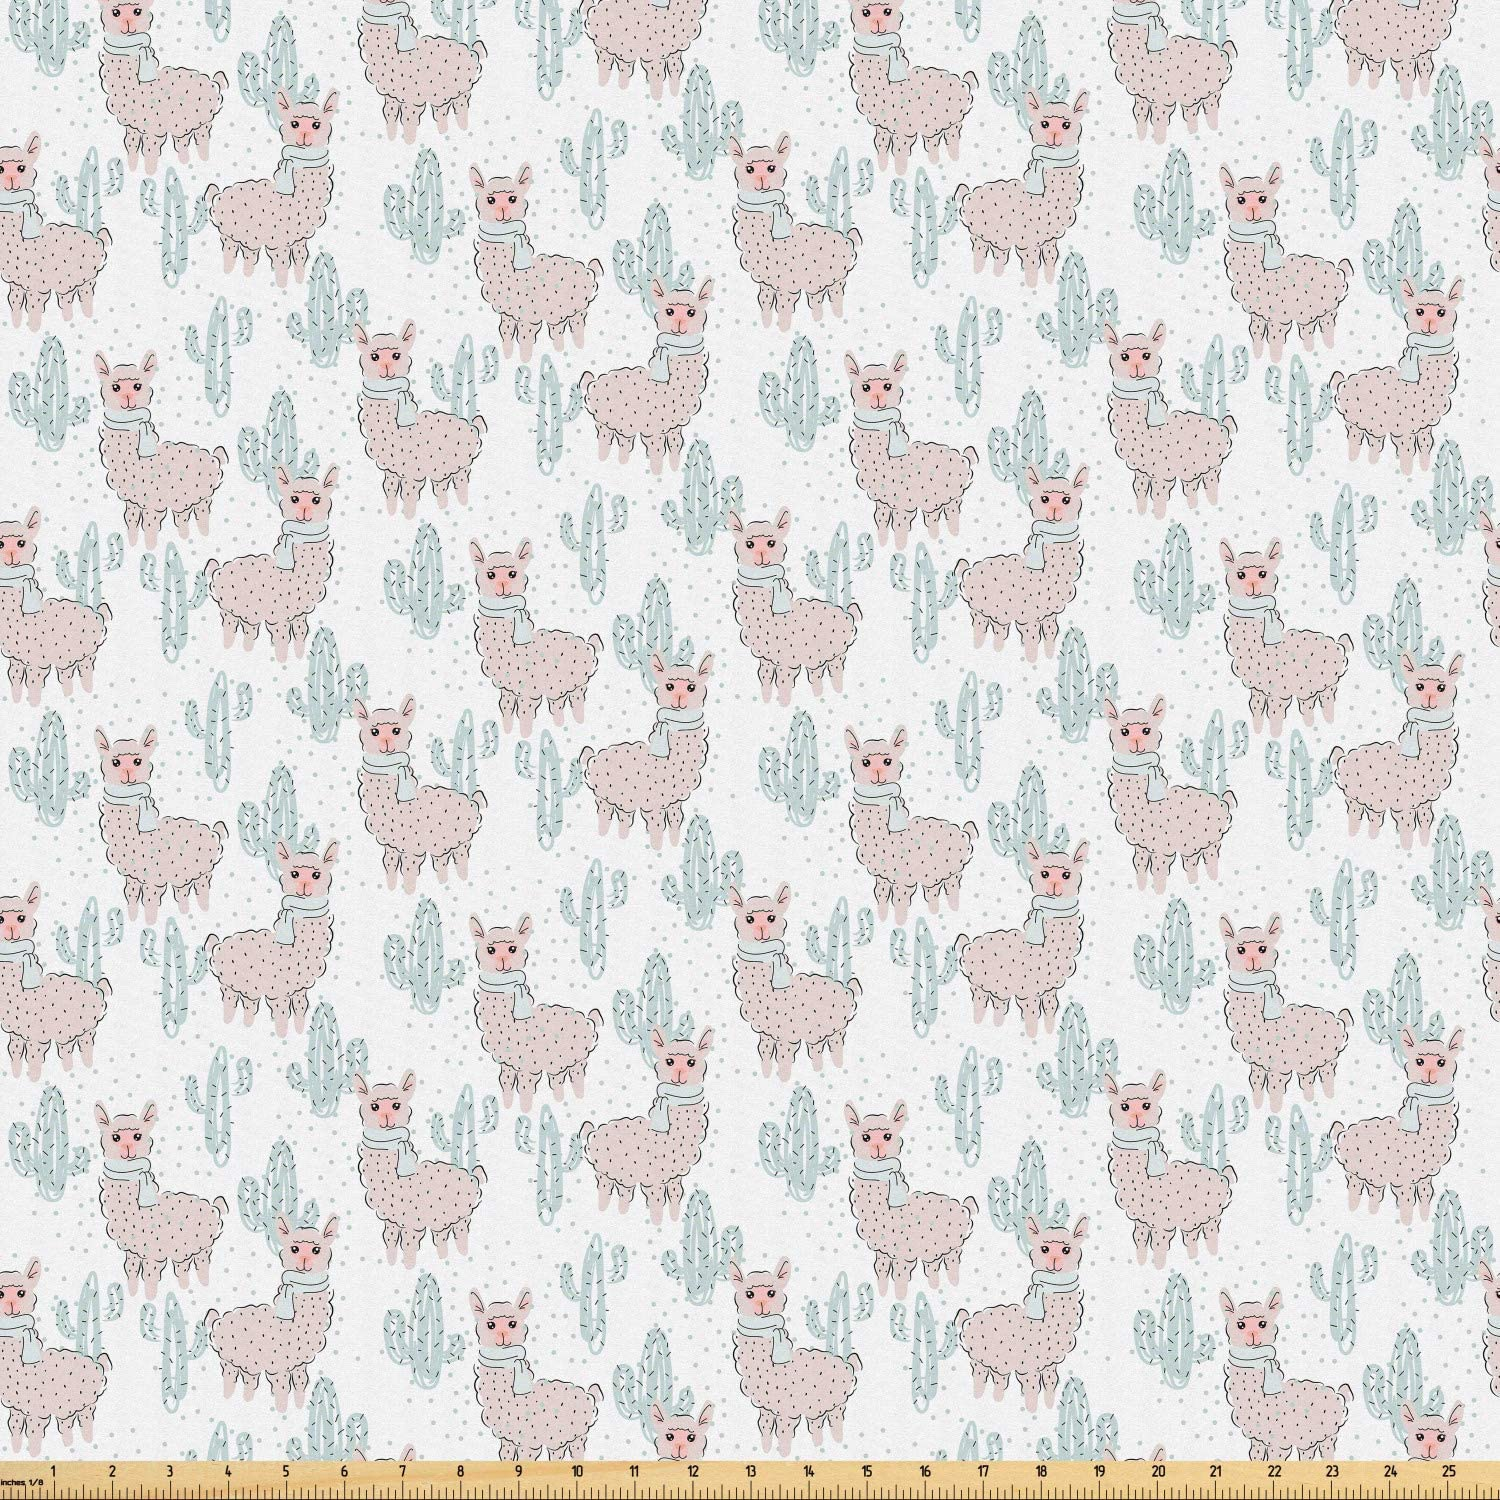 Ambesonne Animal Print Fabric by The Yard, Nursery Cartoon of Llama with Scarf and Cactus, Microfiber Fabric for Arts and Crafts Textiles & Decor, 2 Yards, Pale Eggshell Pale Cadet Blue Blush White